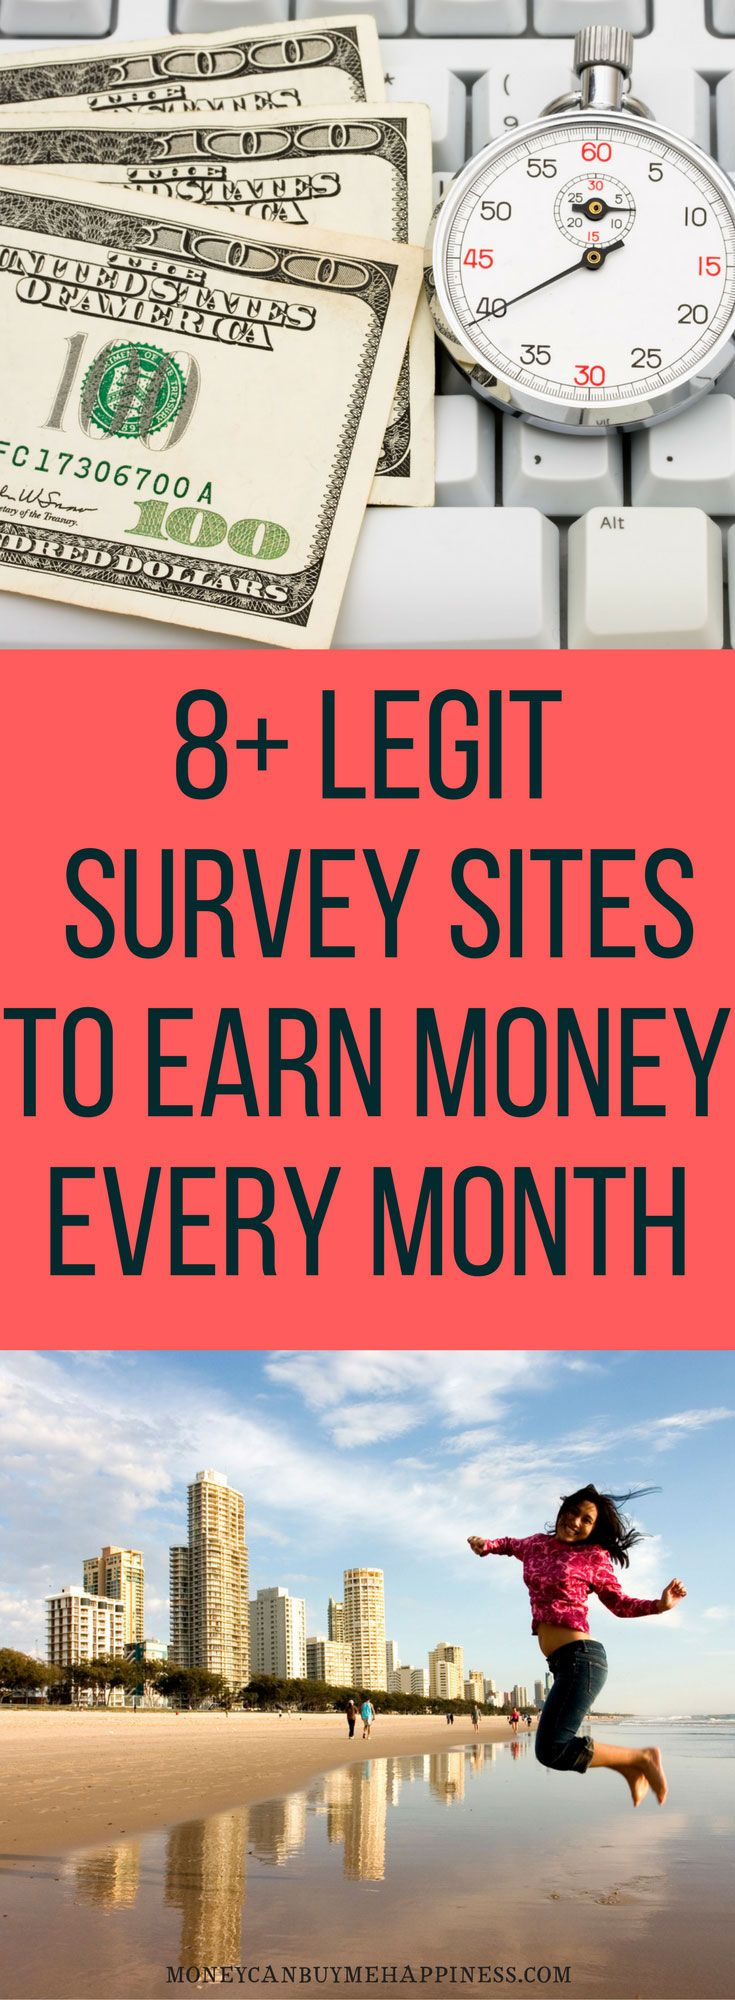 Wondering how to get paid to take surveys? This list of legit survey sites contains the best paid survey companies that pay cash or gift cards. Earning extra cash from surveys is a great way to increase your income and have pay for holidays or gifts.